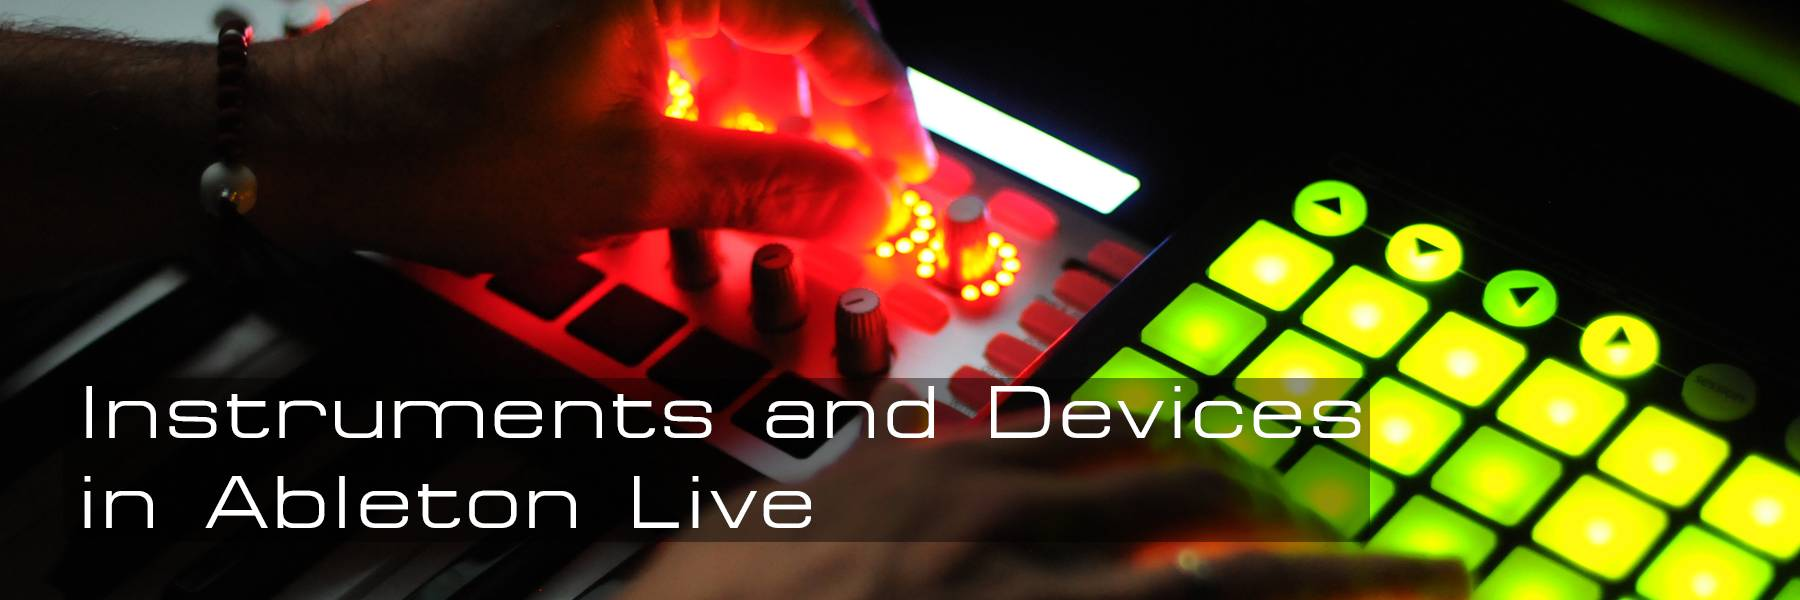 Instruments and Devices in Ableton Live